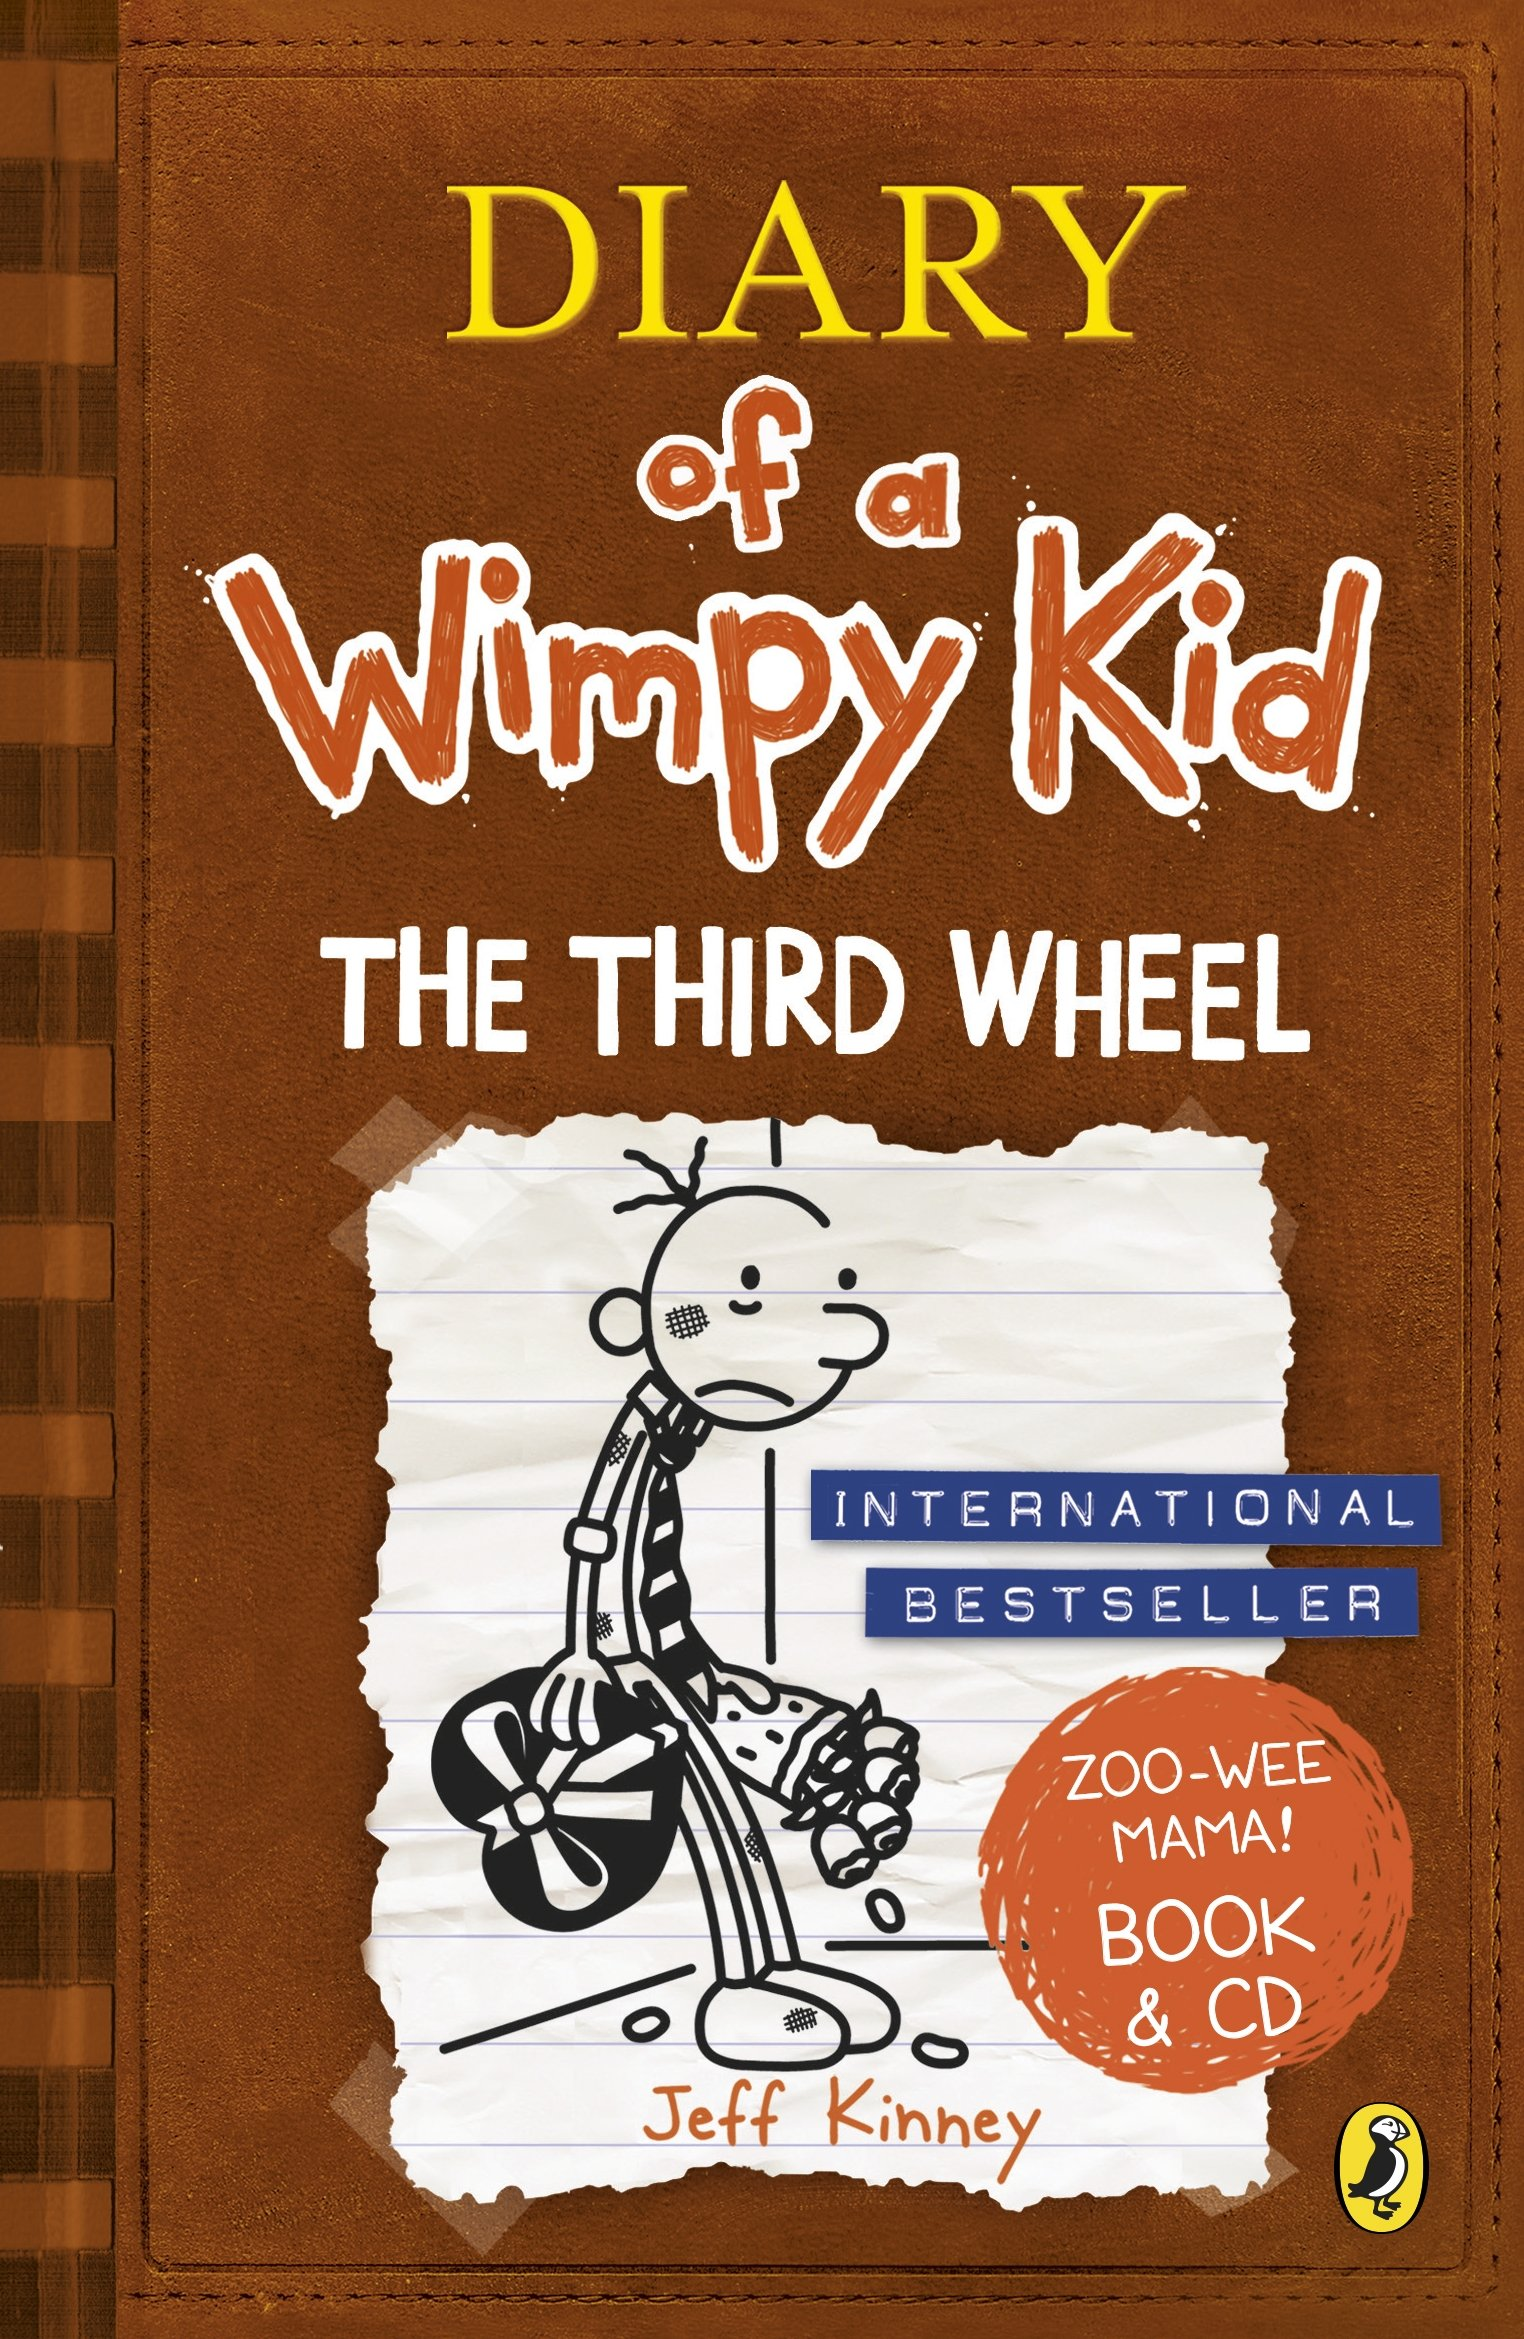 Diary Wimpy Kid Third Wheel product image